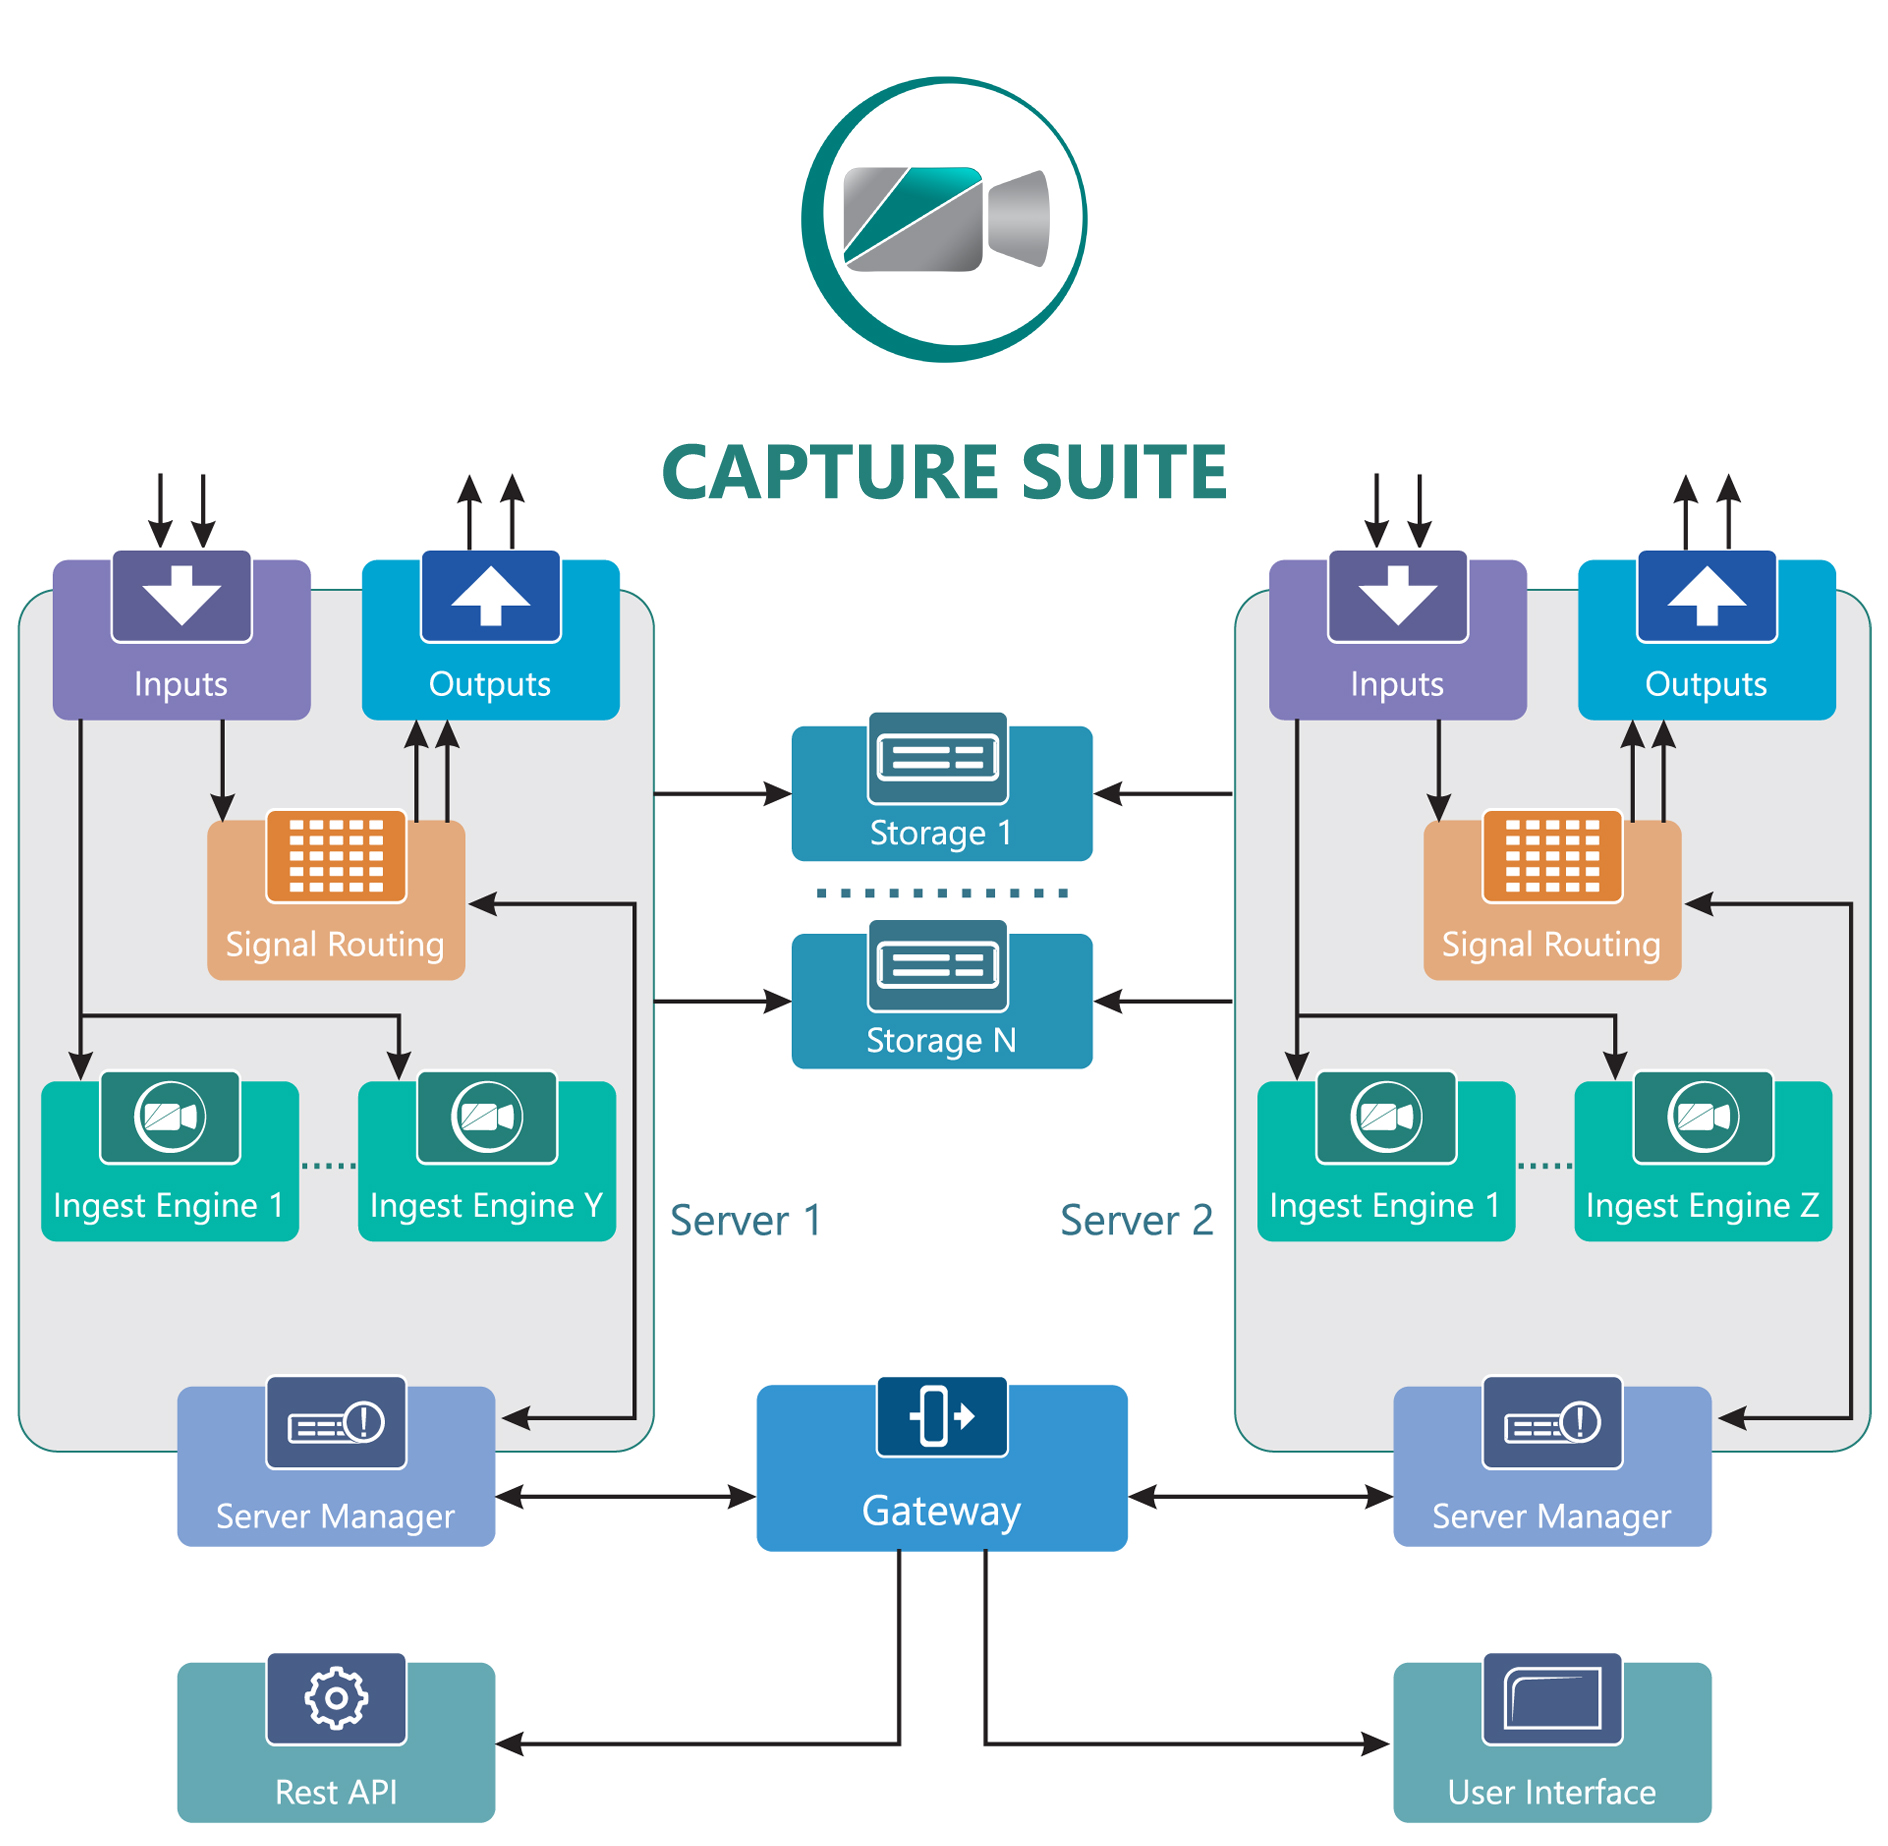 Capture Suite workflow